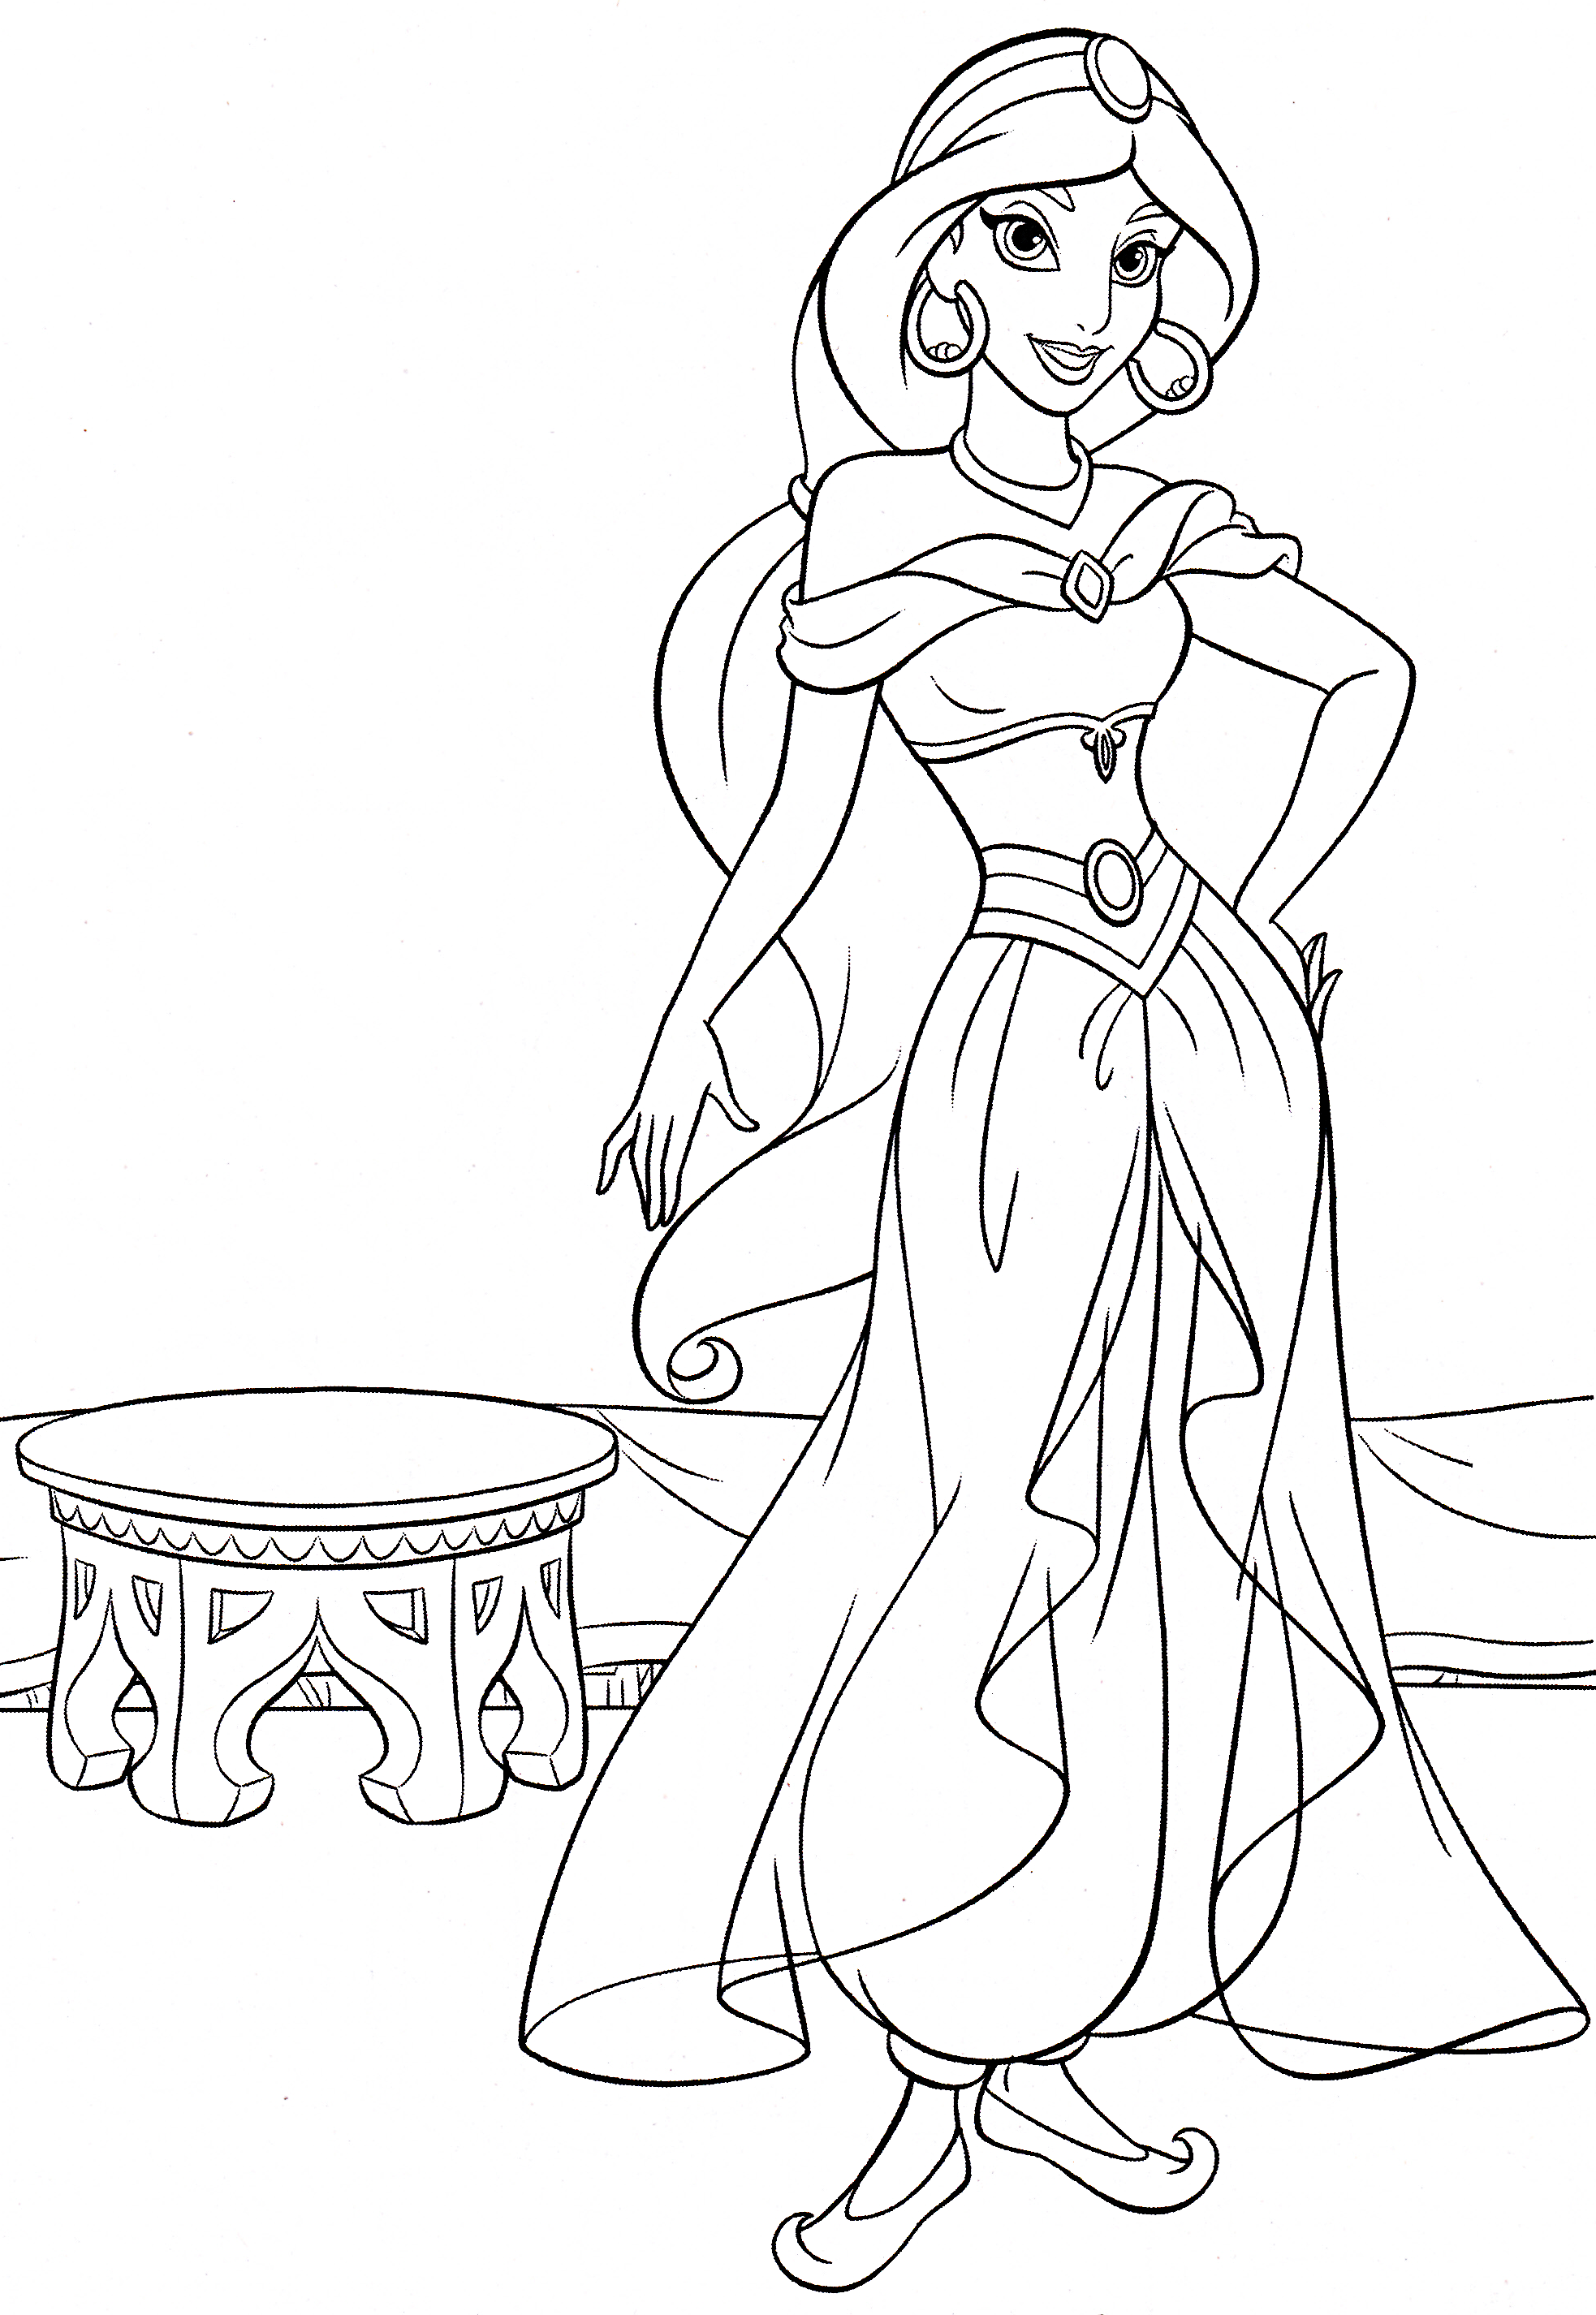 Walt Disney Coloring Pages - Princess Jasmine - Walt ...